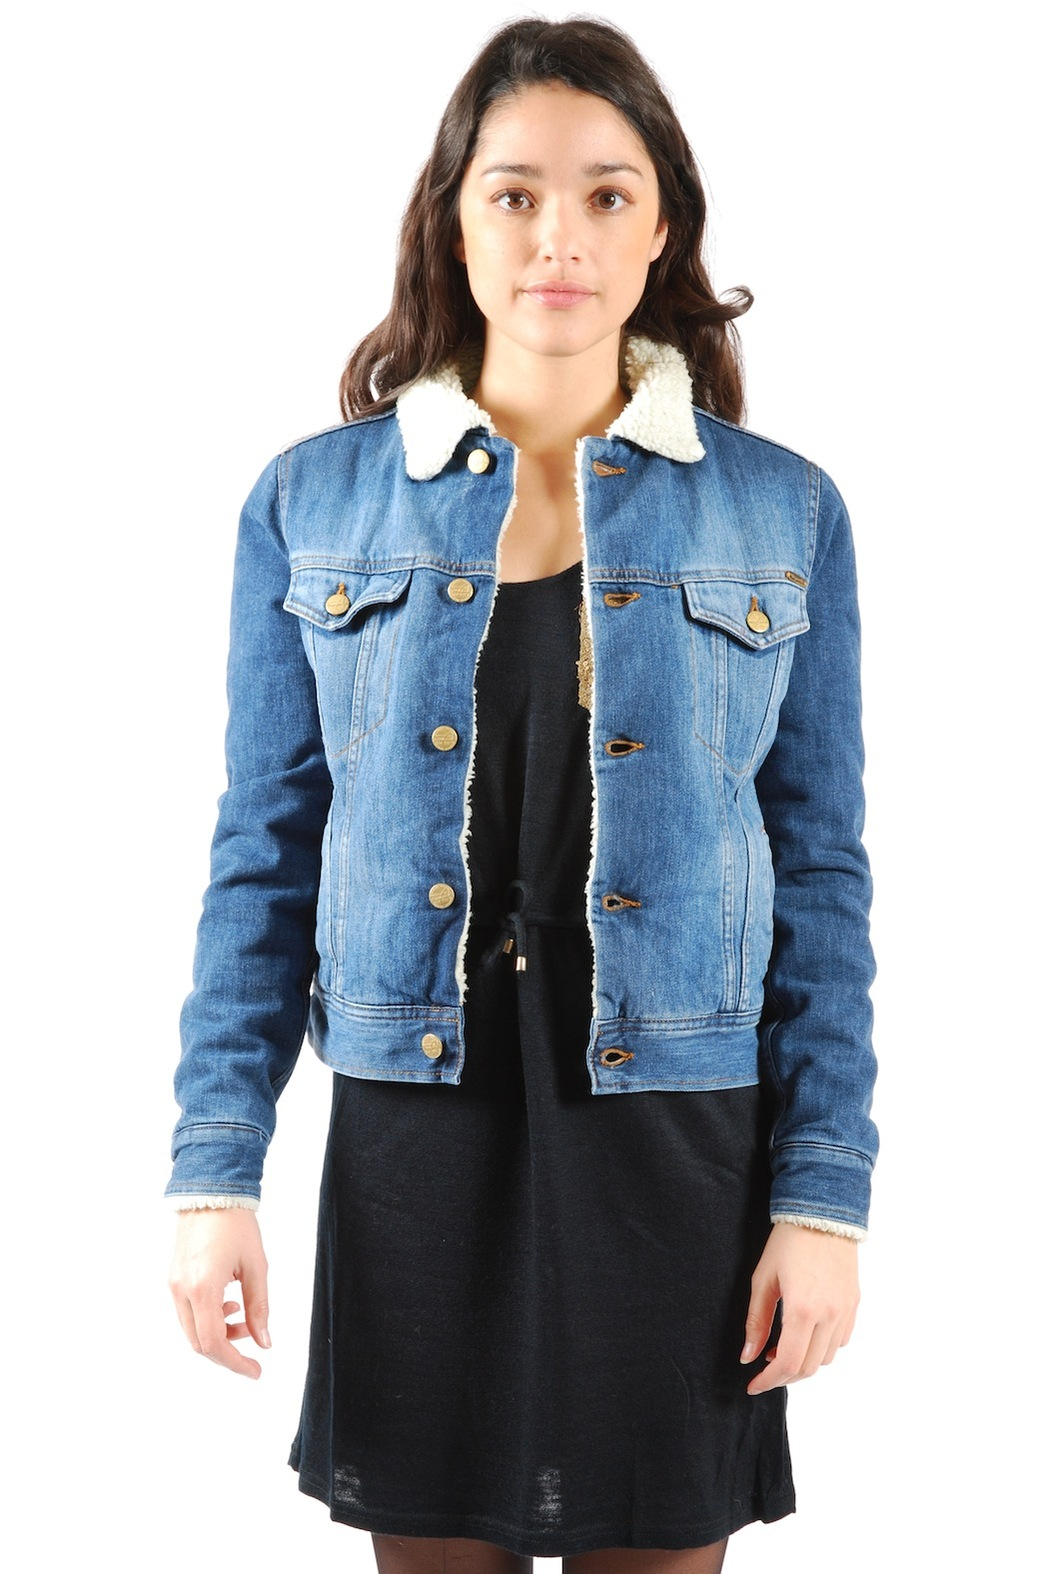 Fur-Lined Denim Jacket from Marais by Acquaverde — Shoptiques